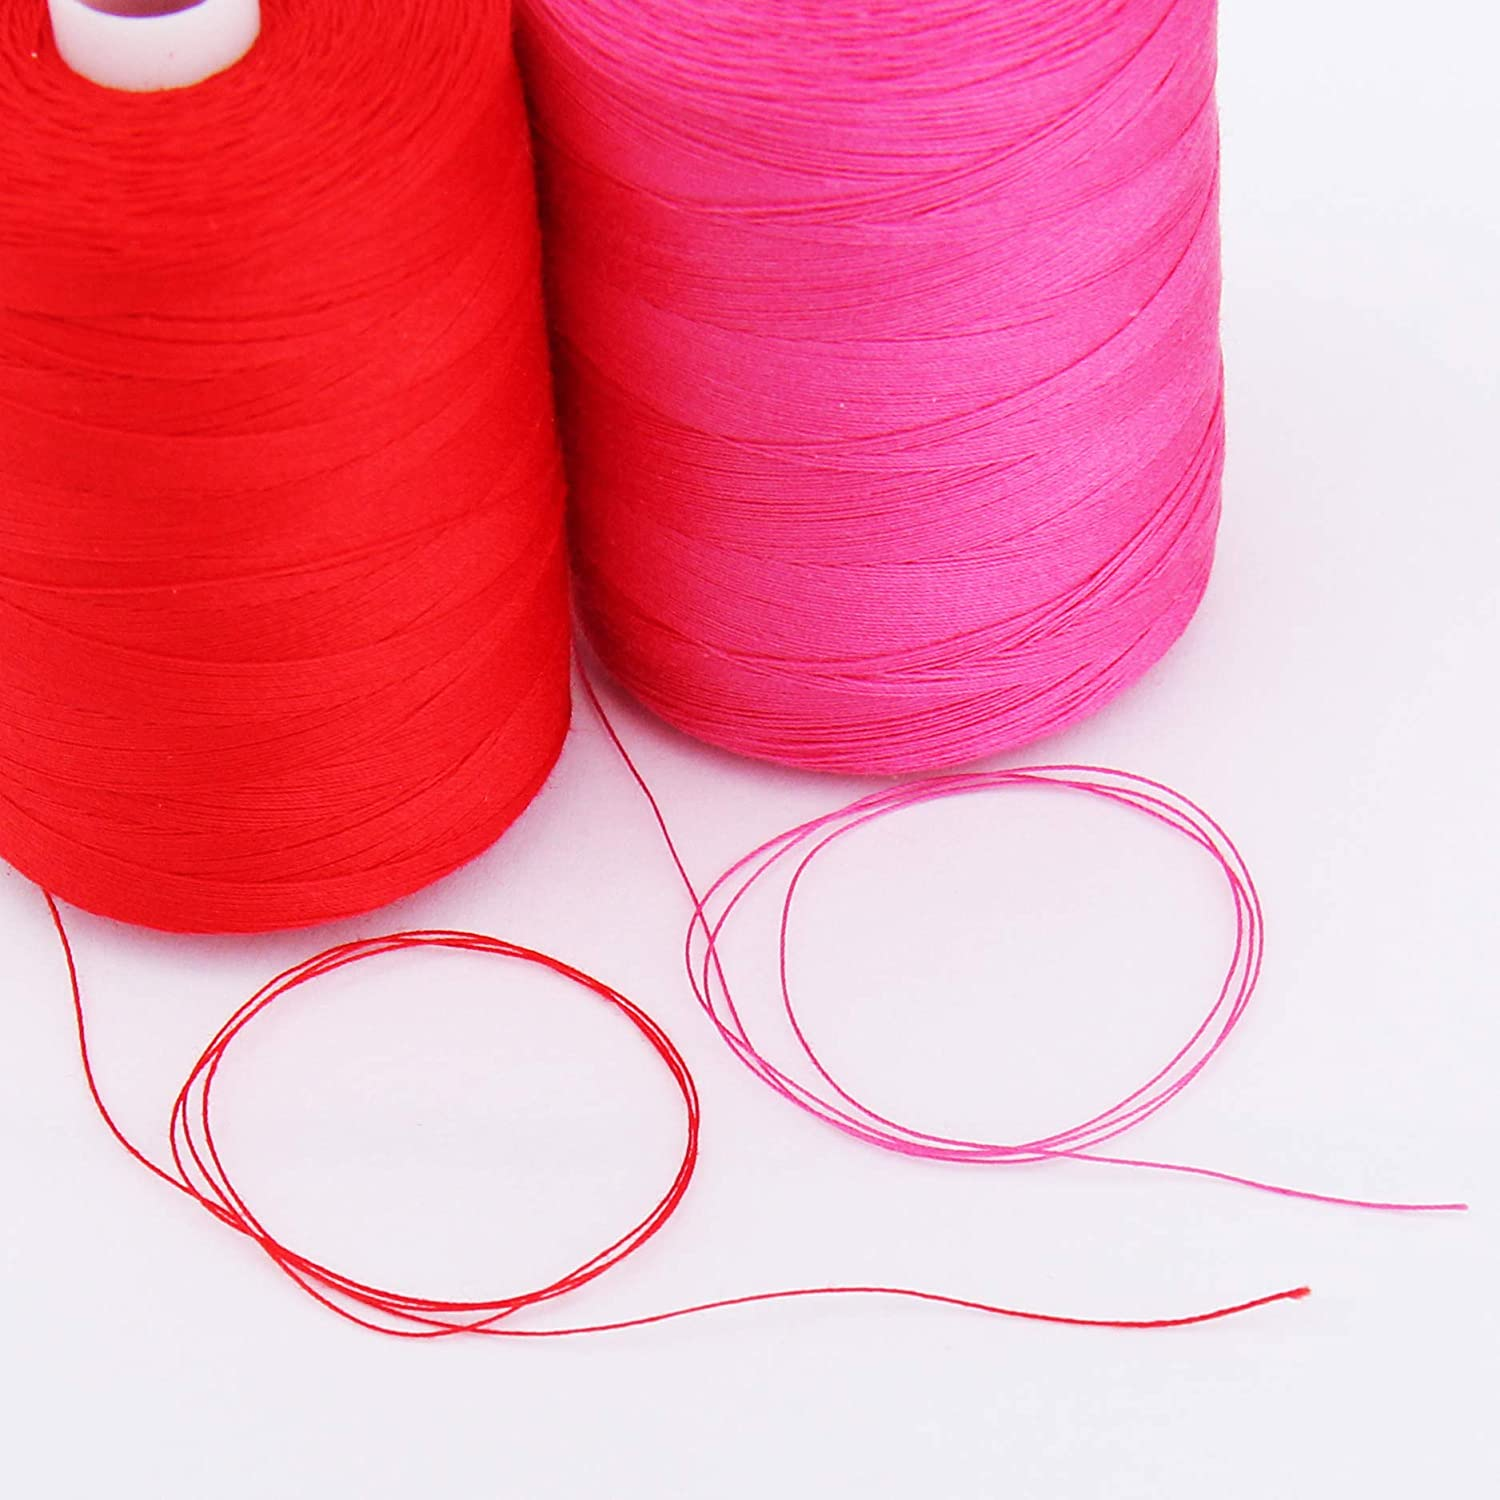 1000M Spools 50//3 Weight Threadart 100/% Cotton Thread and Serging For Quilting Color RED 50 Colors Available Sewing